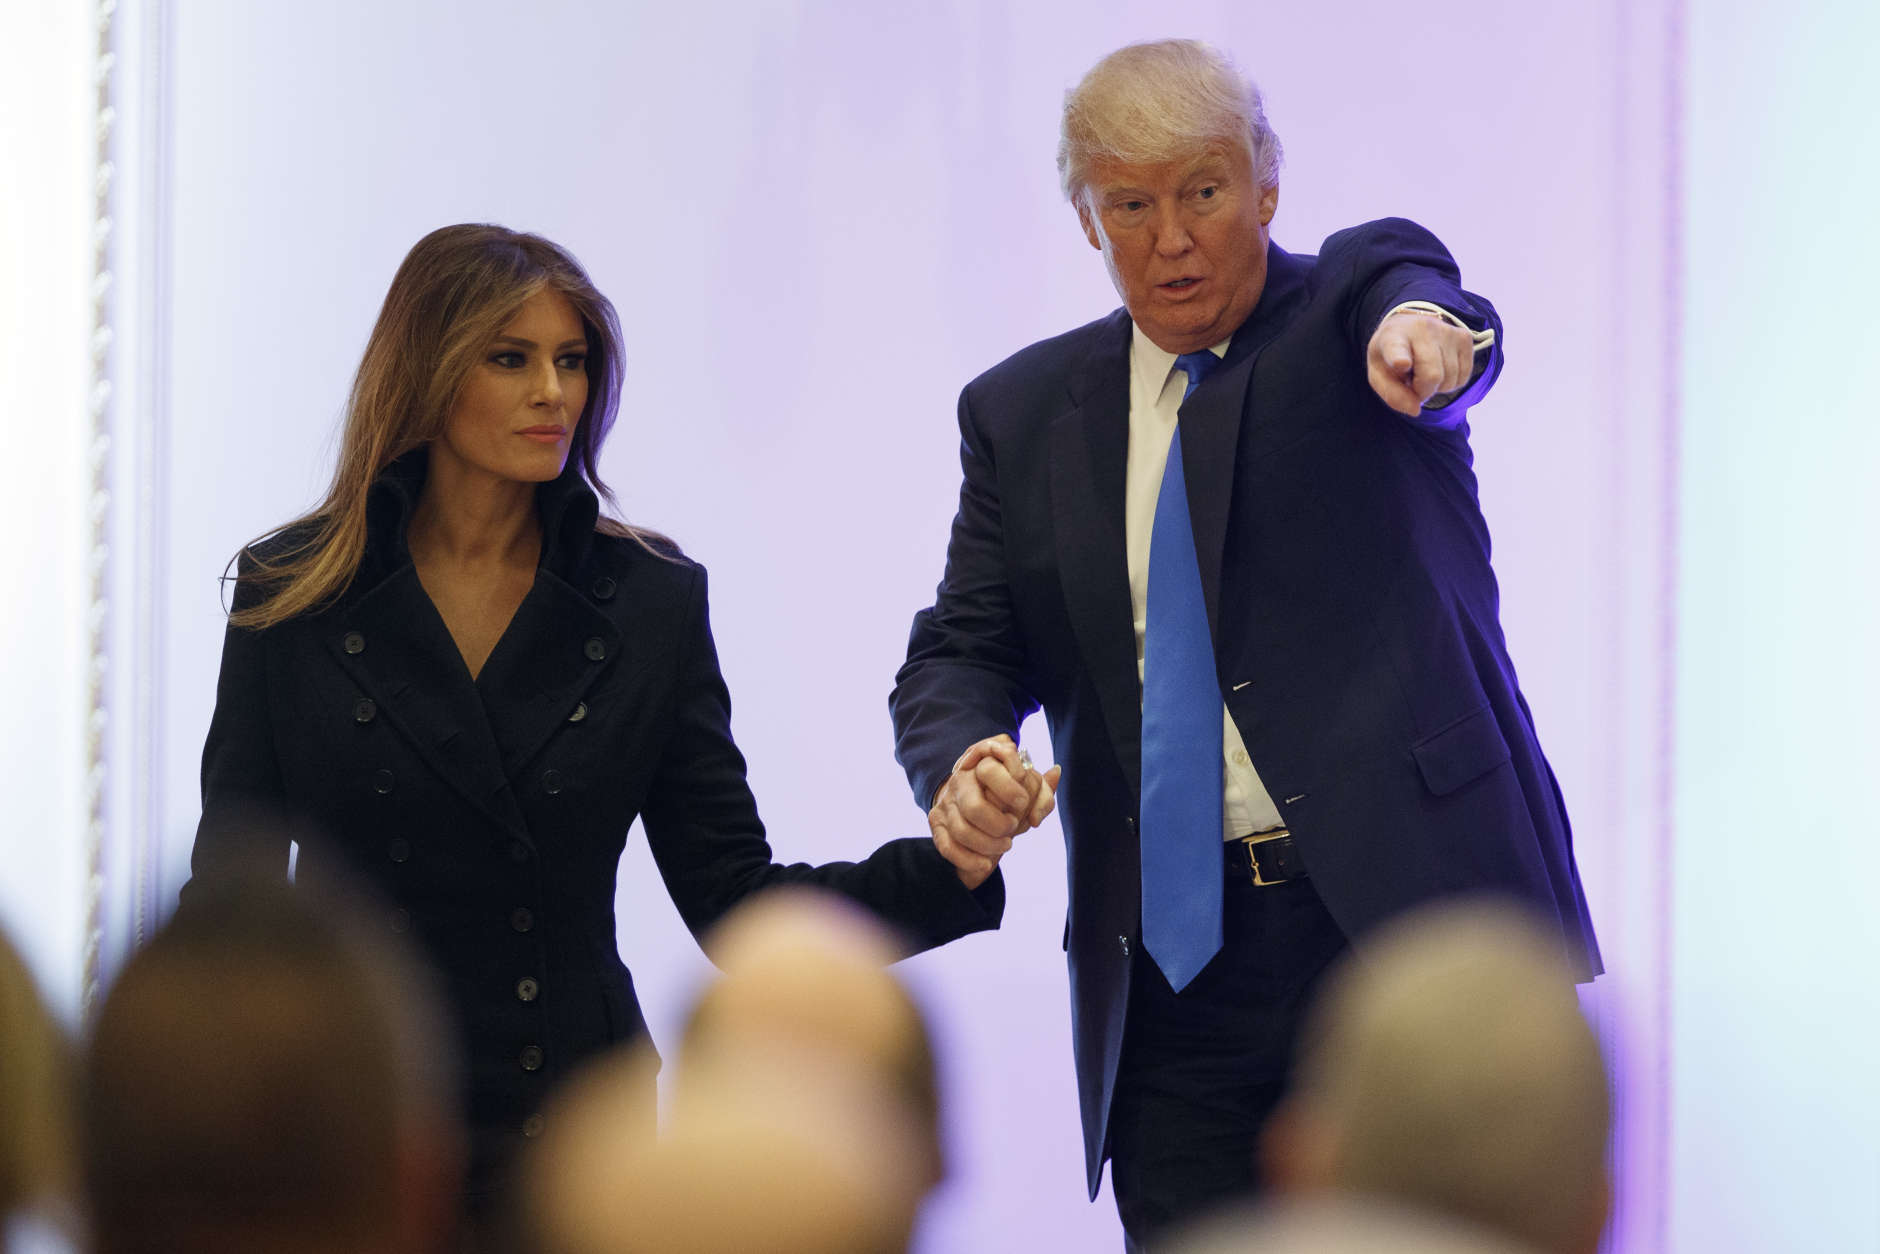 President-elect Donald Trump and his wife Melania arrive to the Leadership Luncheon at Trump International in Washington, Thursday, Jan. 19, 2017. (AP Photo/Evan Vucci)